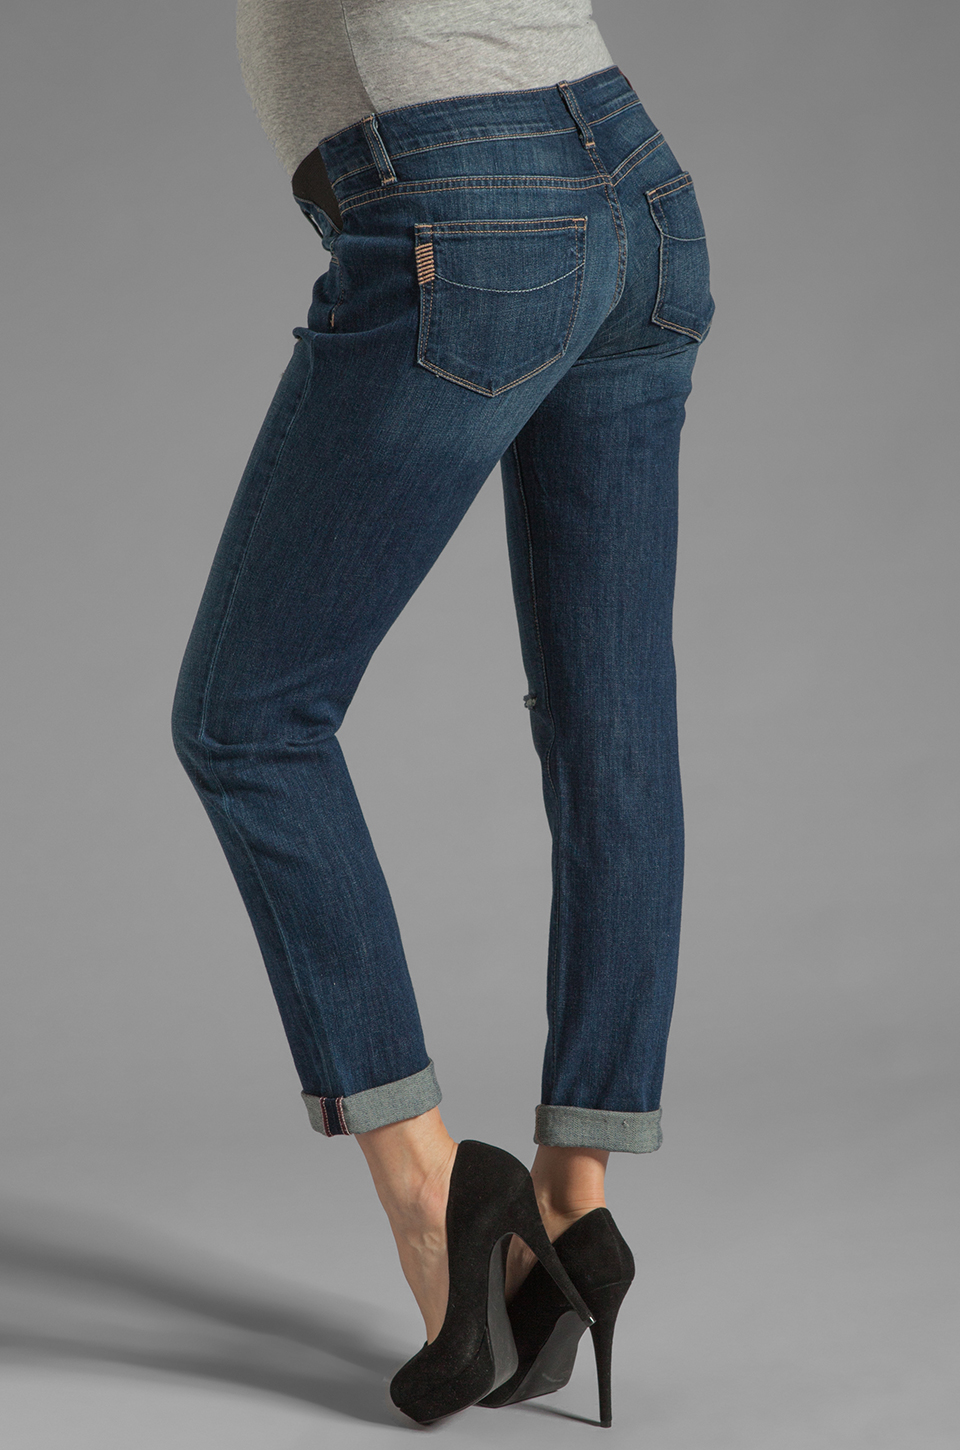 Paige Denim Jimmy Jimmy Skinny Maternity in Tawni Destruction